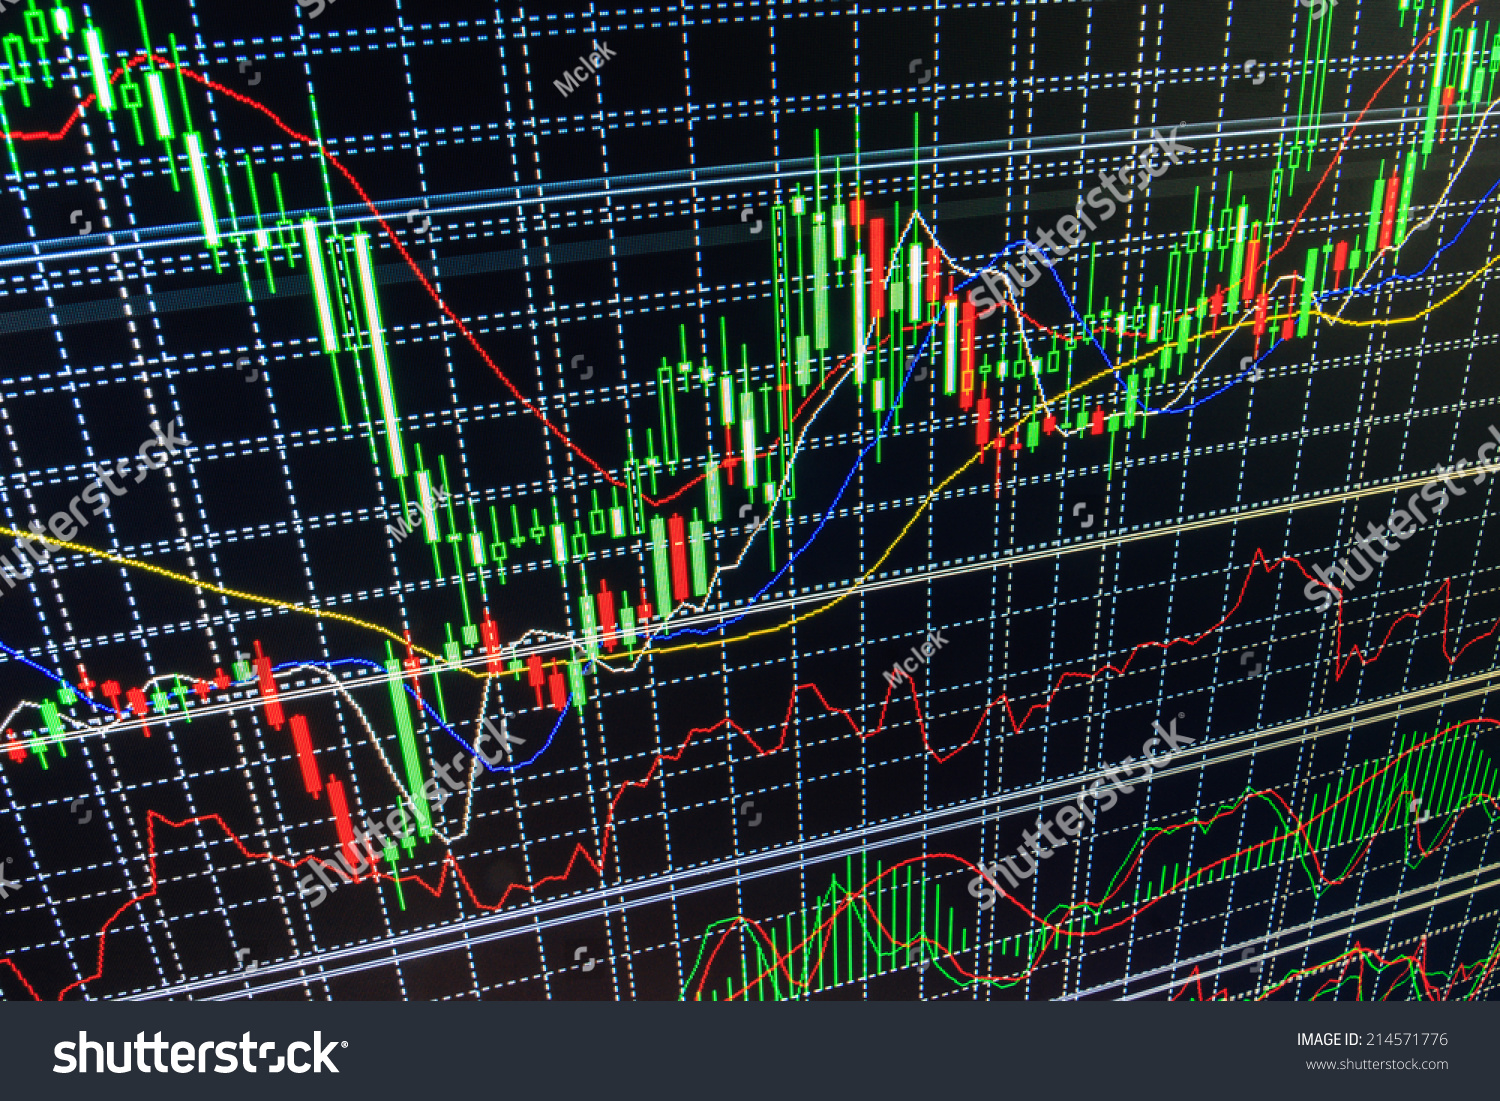 Historical data forex free